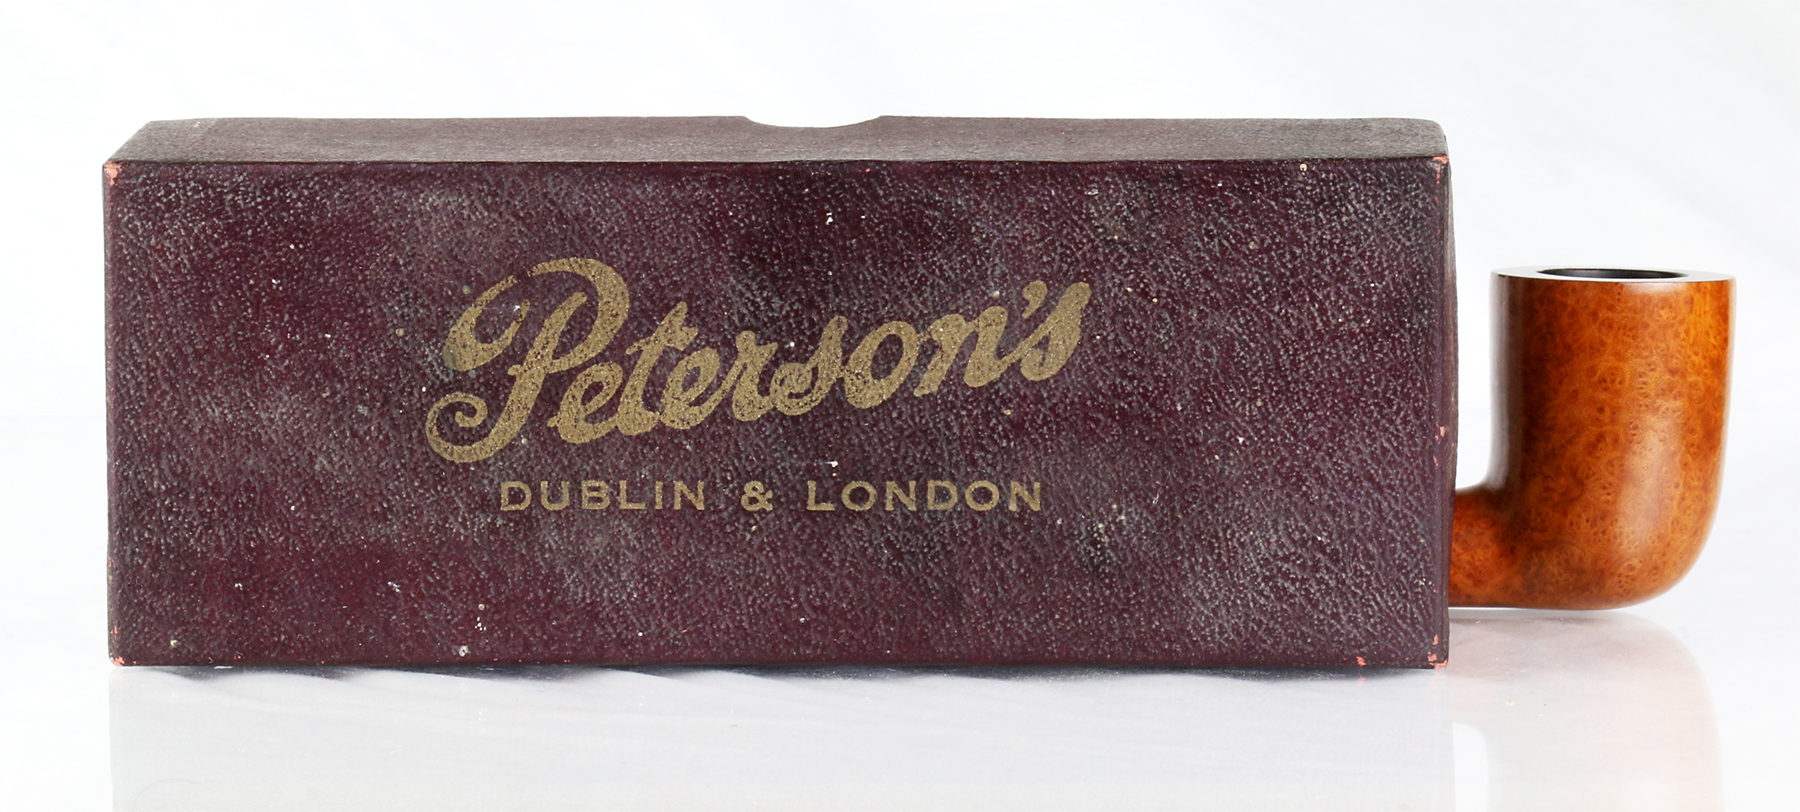 "187. Was the Dublin & London Peterson's ""Supreme"" Line?"